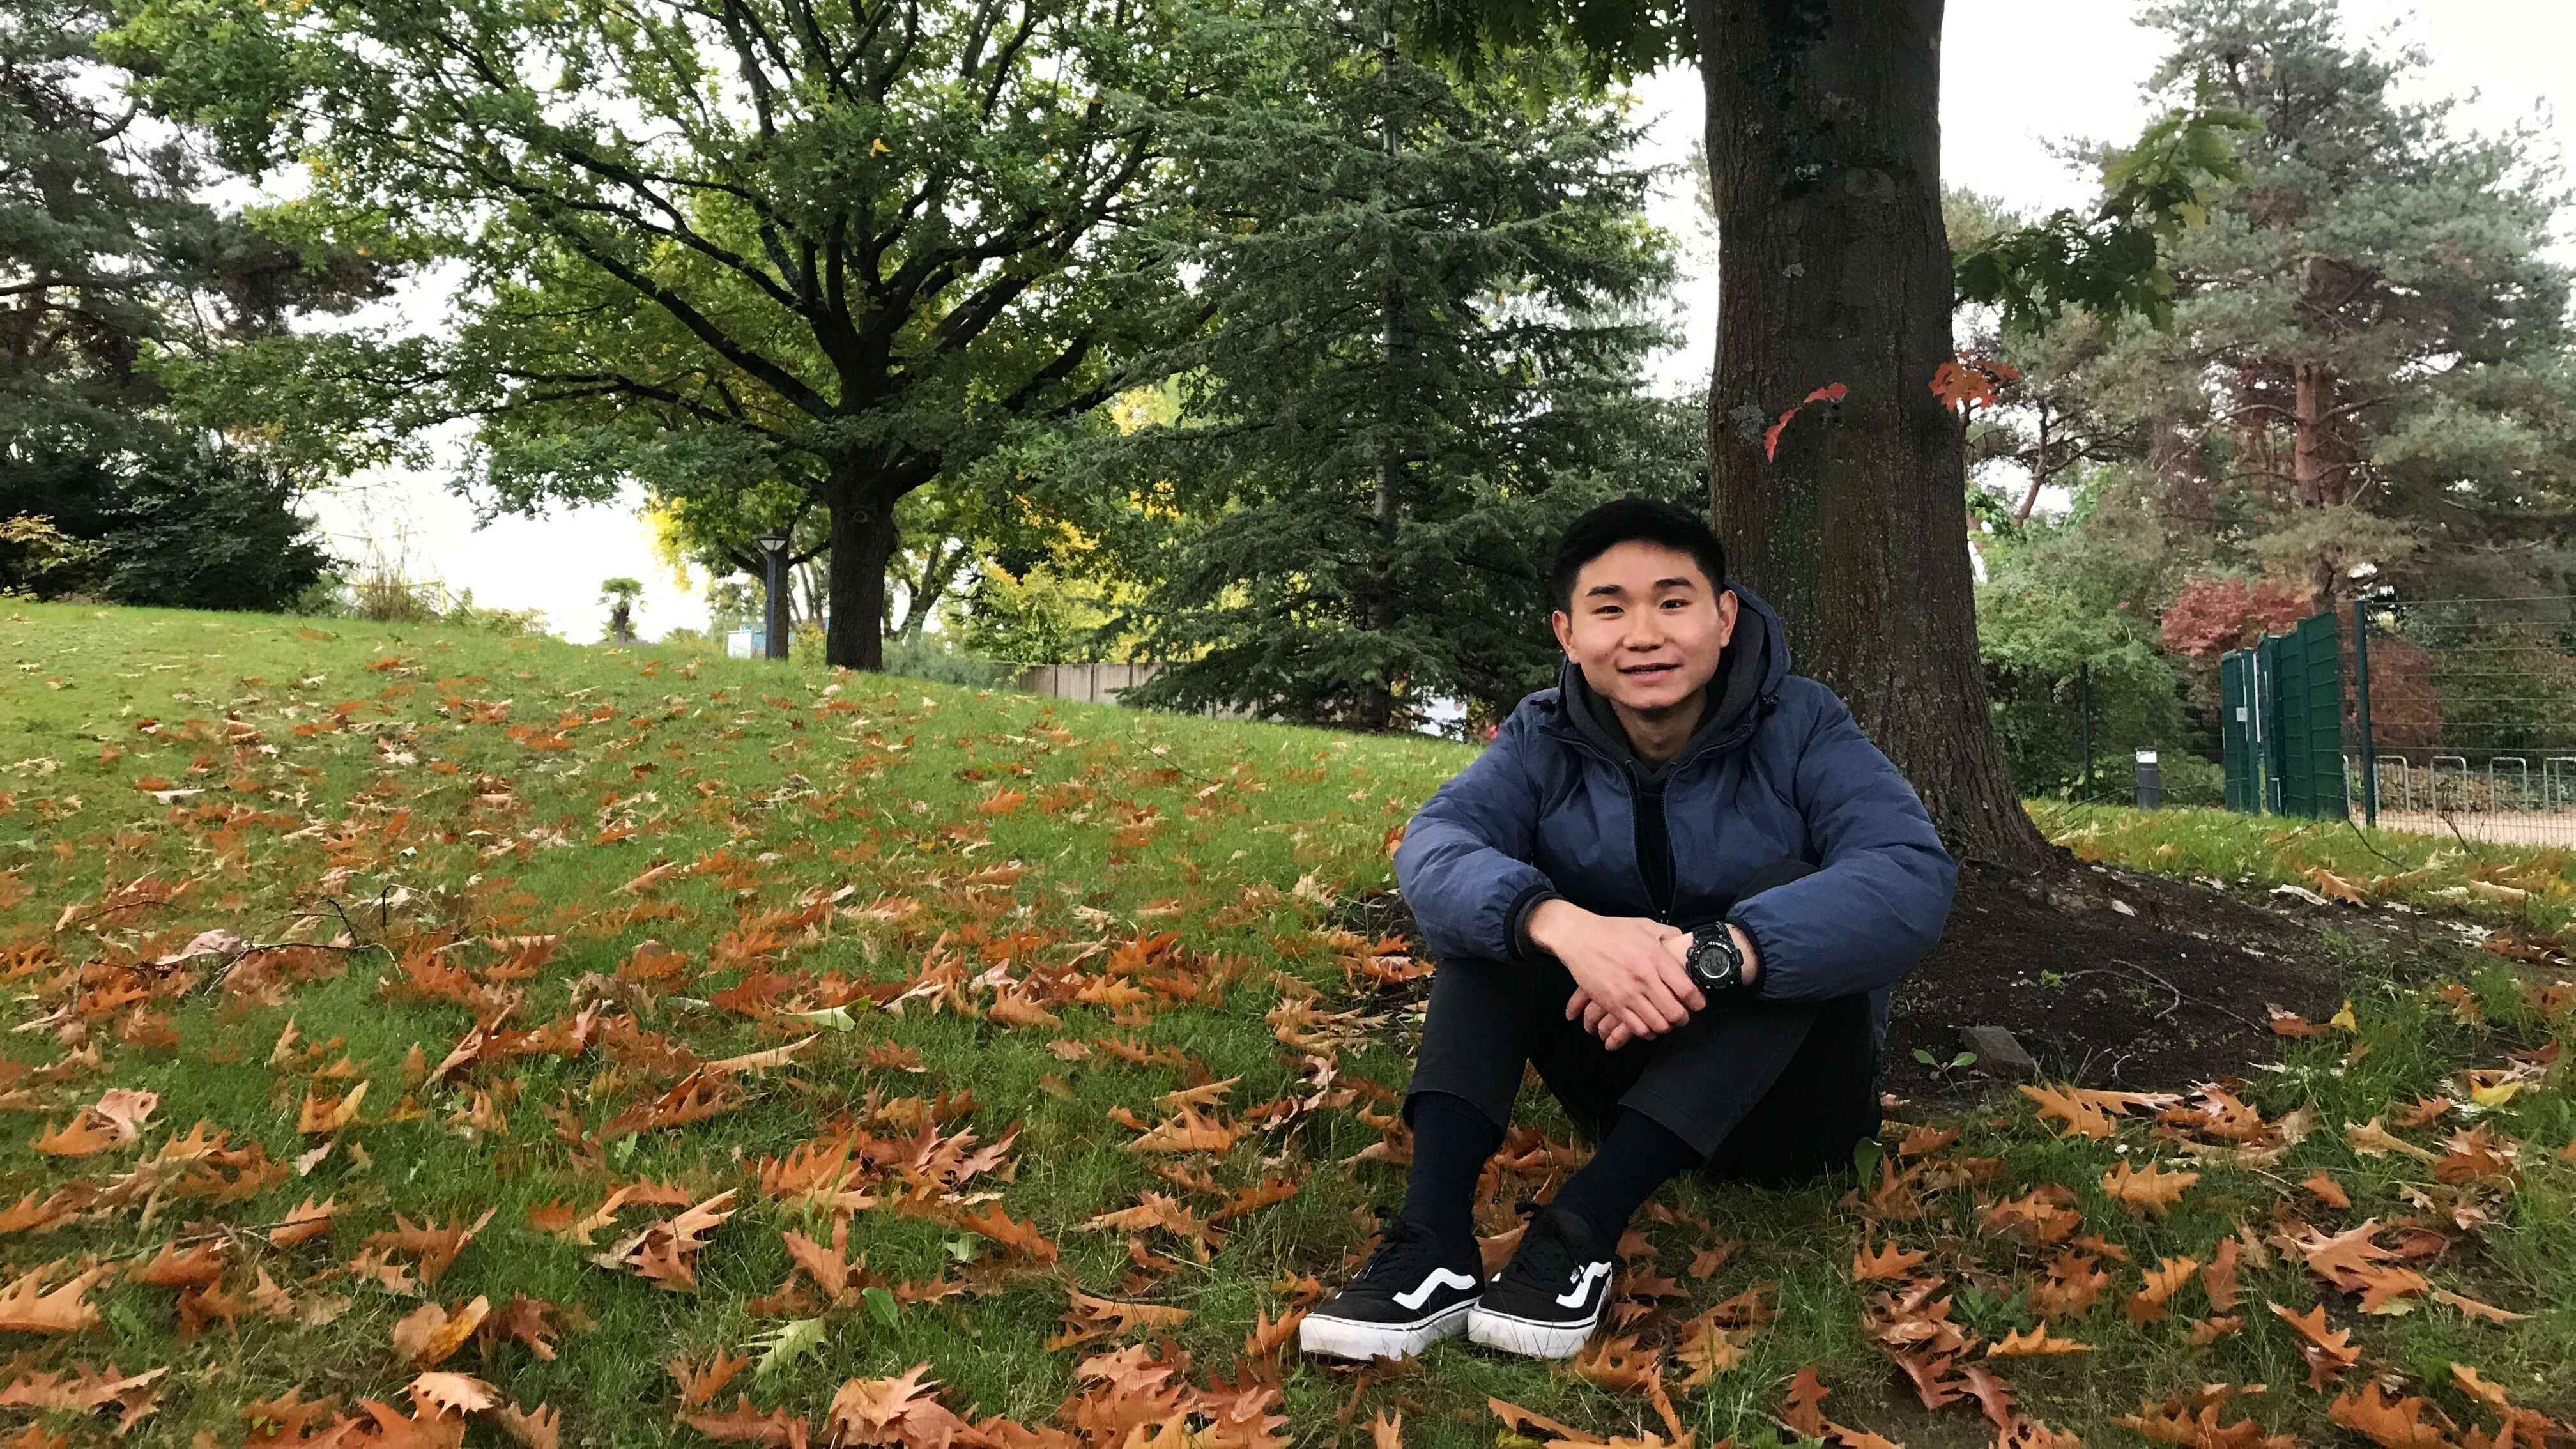 Student Stories: What's it like to study in Germany?